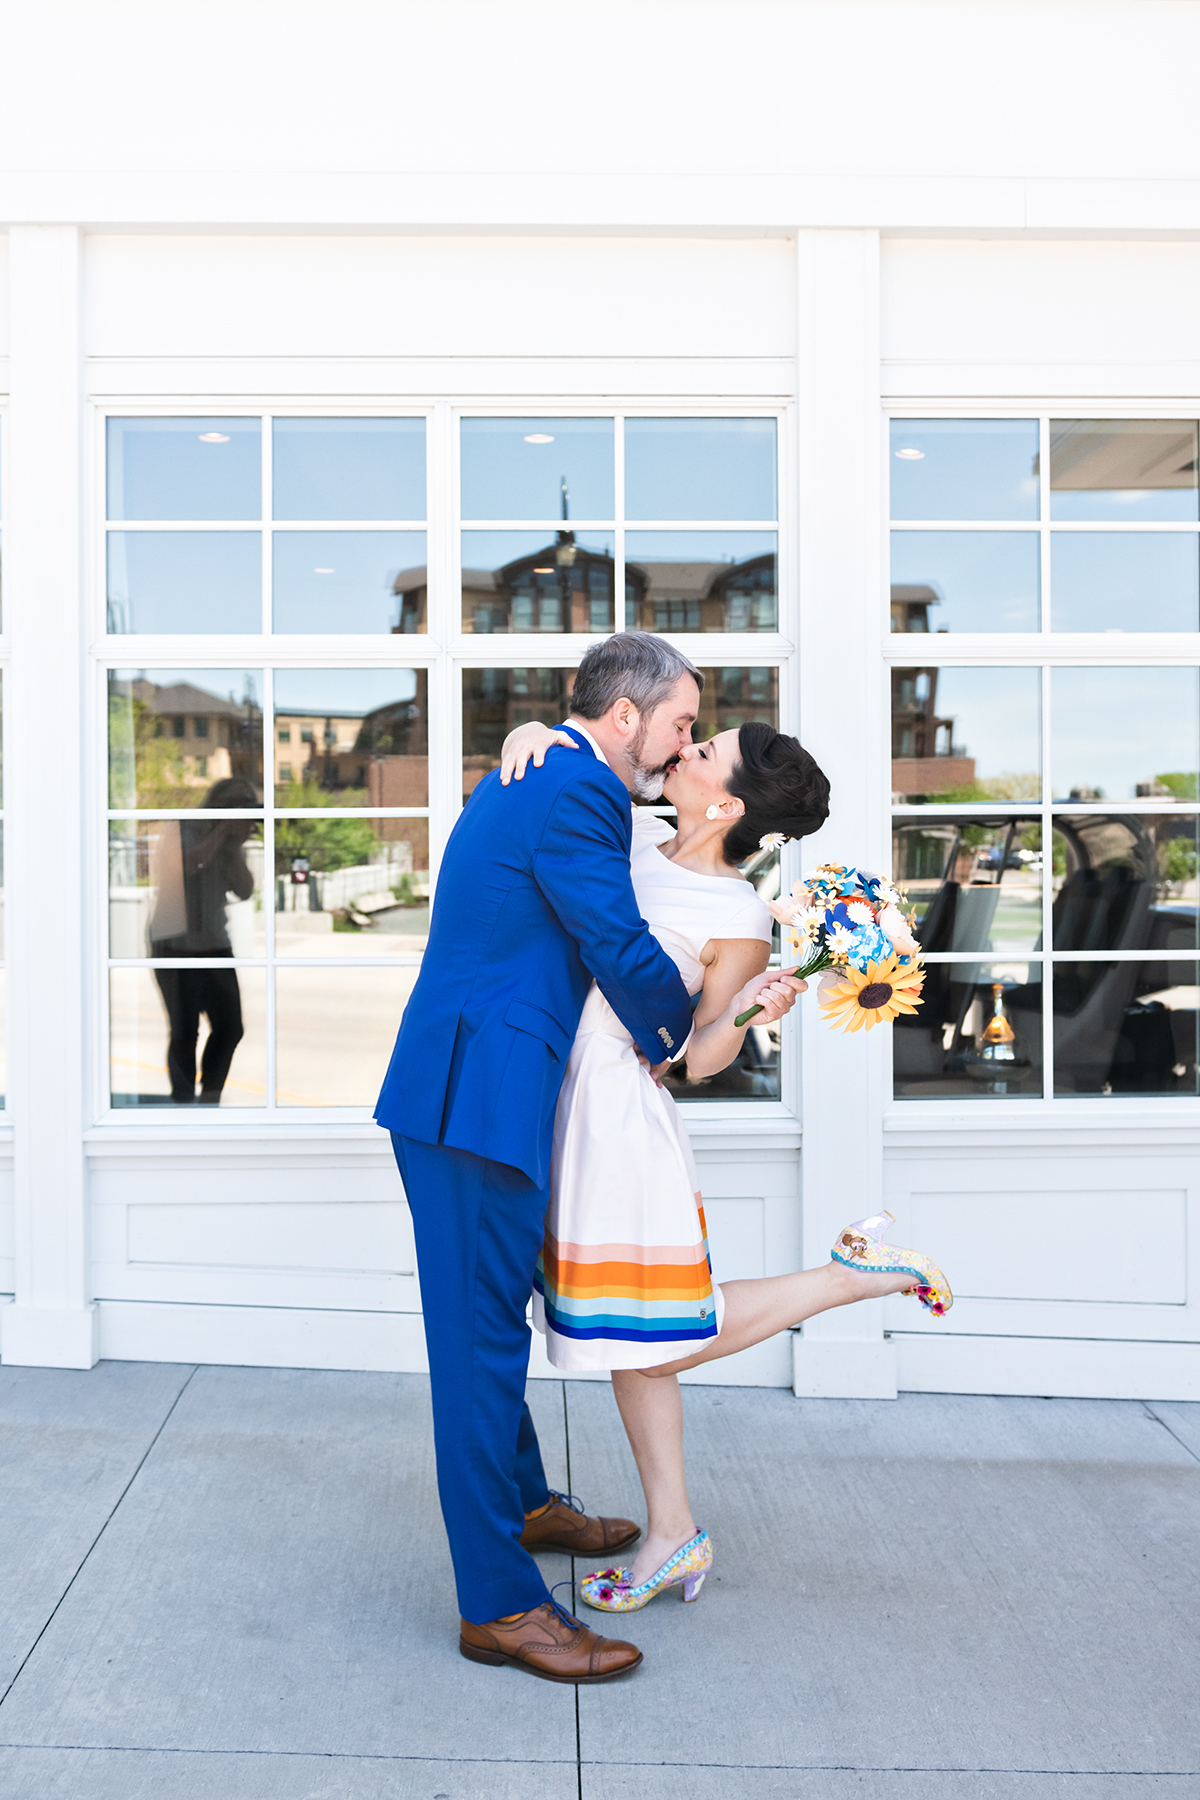 first look at Hotel Landing   bride in rainbow dress   Robin + Tom   Holey Moley contestants   Shuttersmack Minnesota photographer   Sixpence Events and Planning   Gale Woods Reception   Big Stone Mini Golf   .jpg